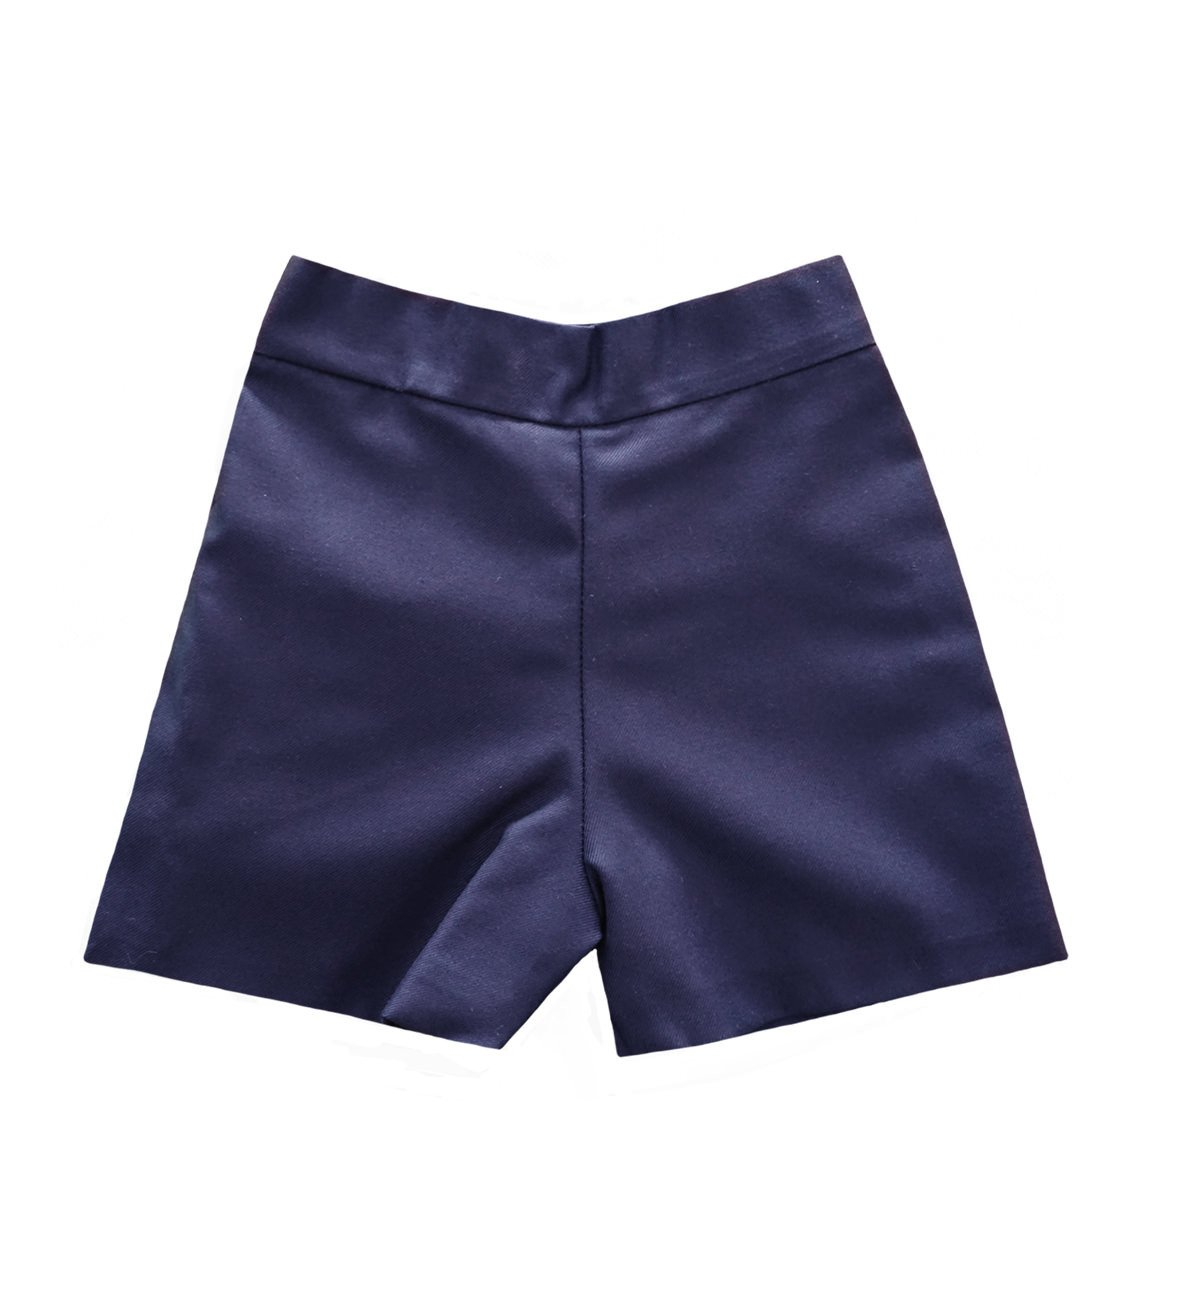 Spanish baby clothes | baby Shorts | Navy blue shorts |babymaC